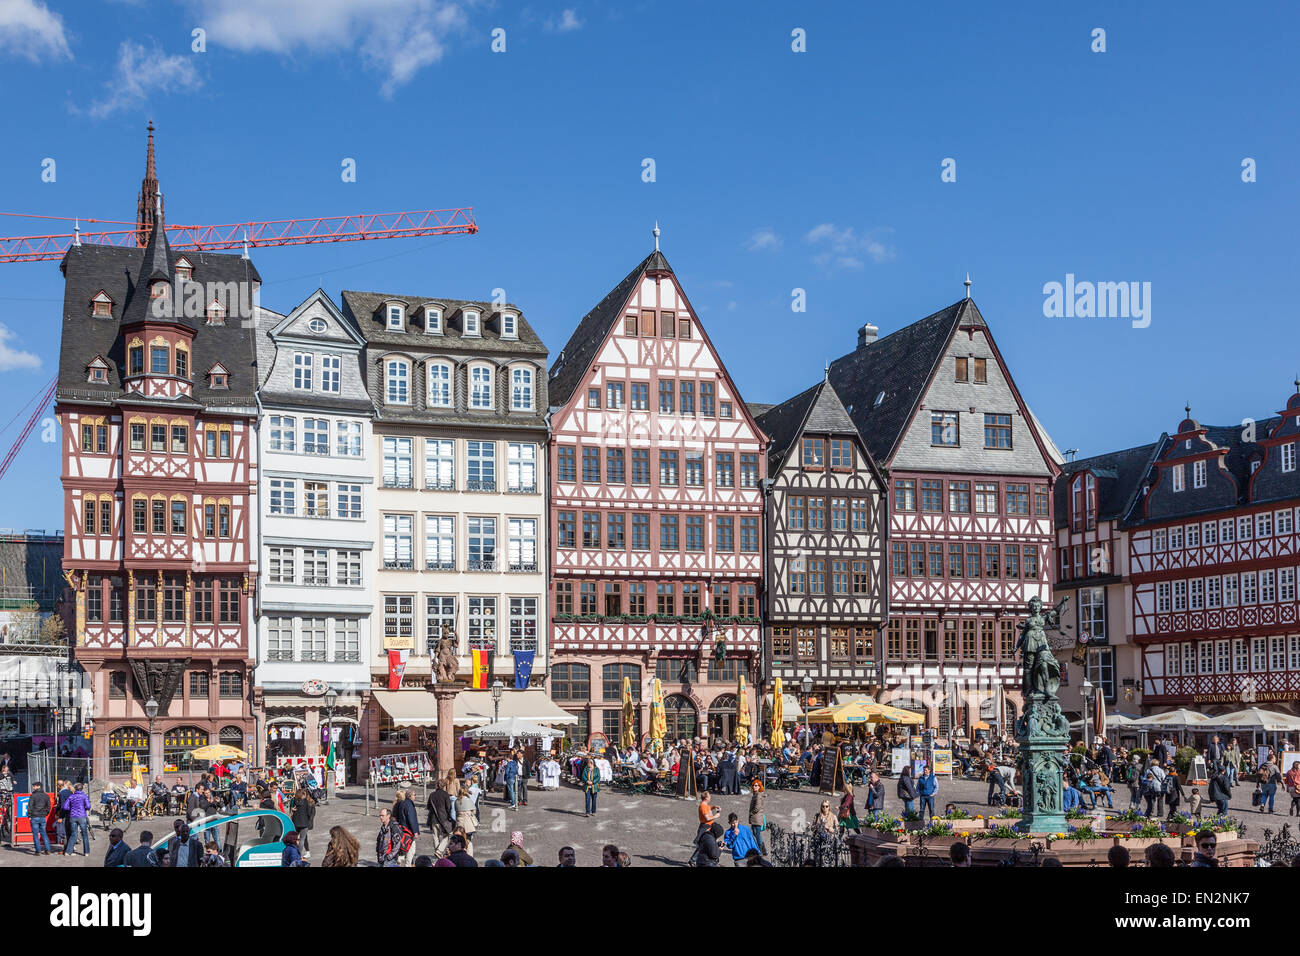 People on Roemerberg square in the historic center of Frankfurt Main, Germany Stock Photo